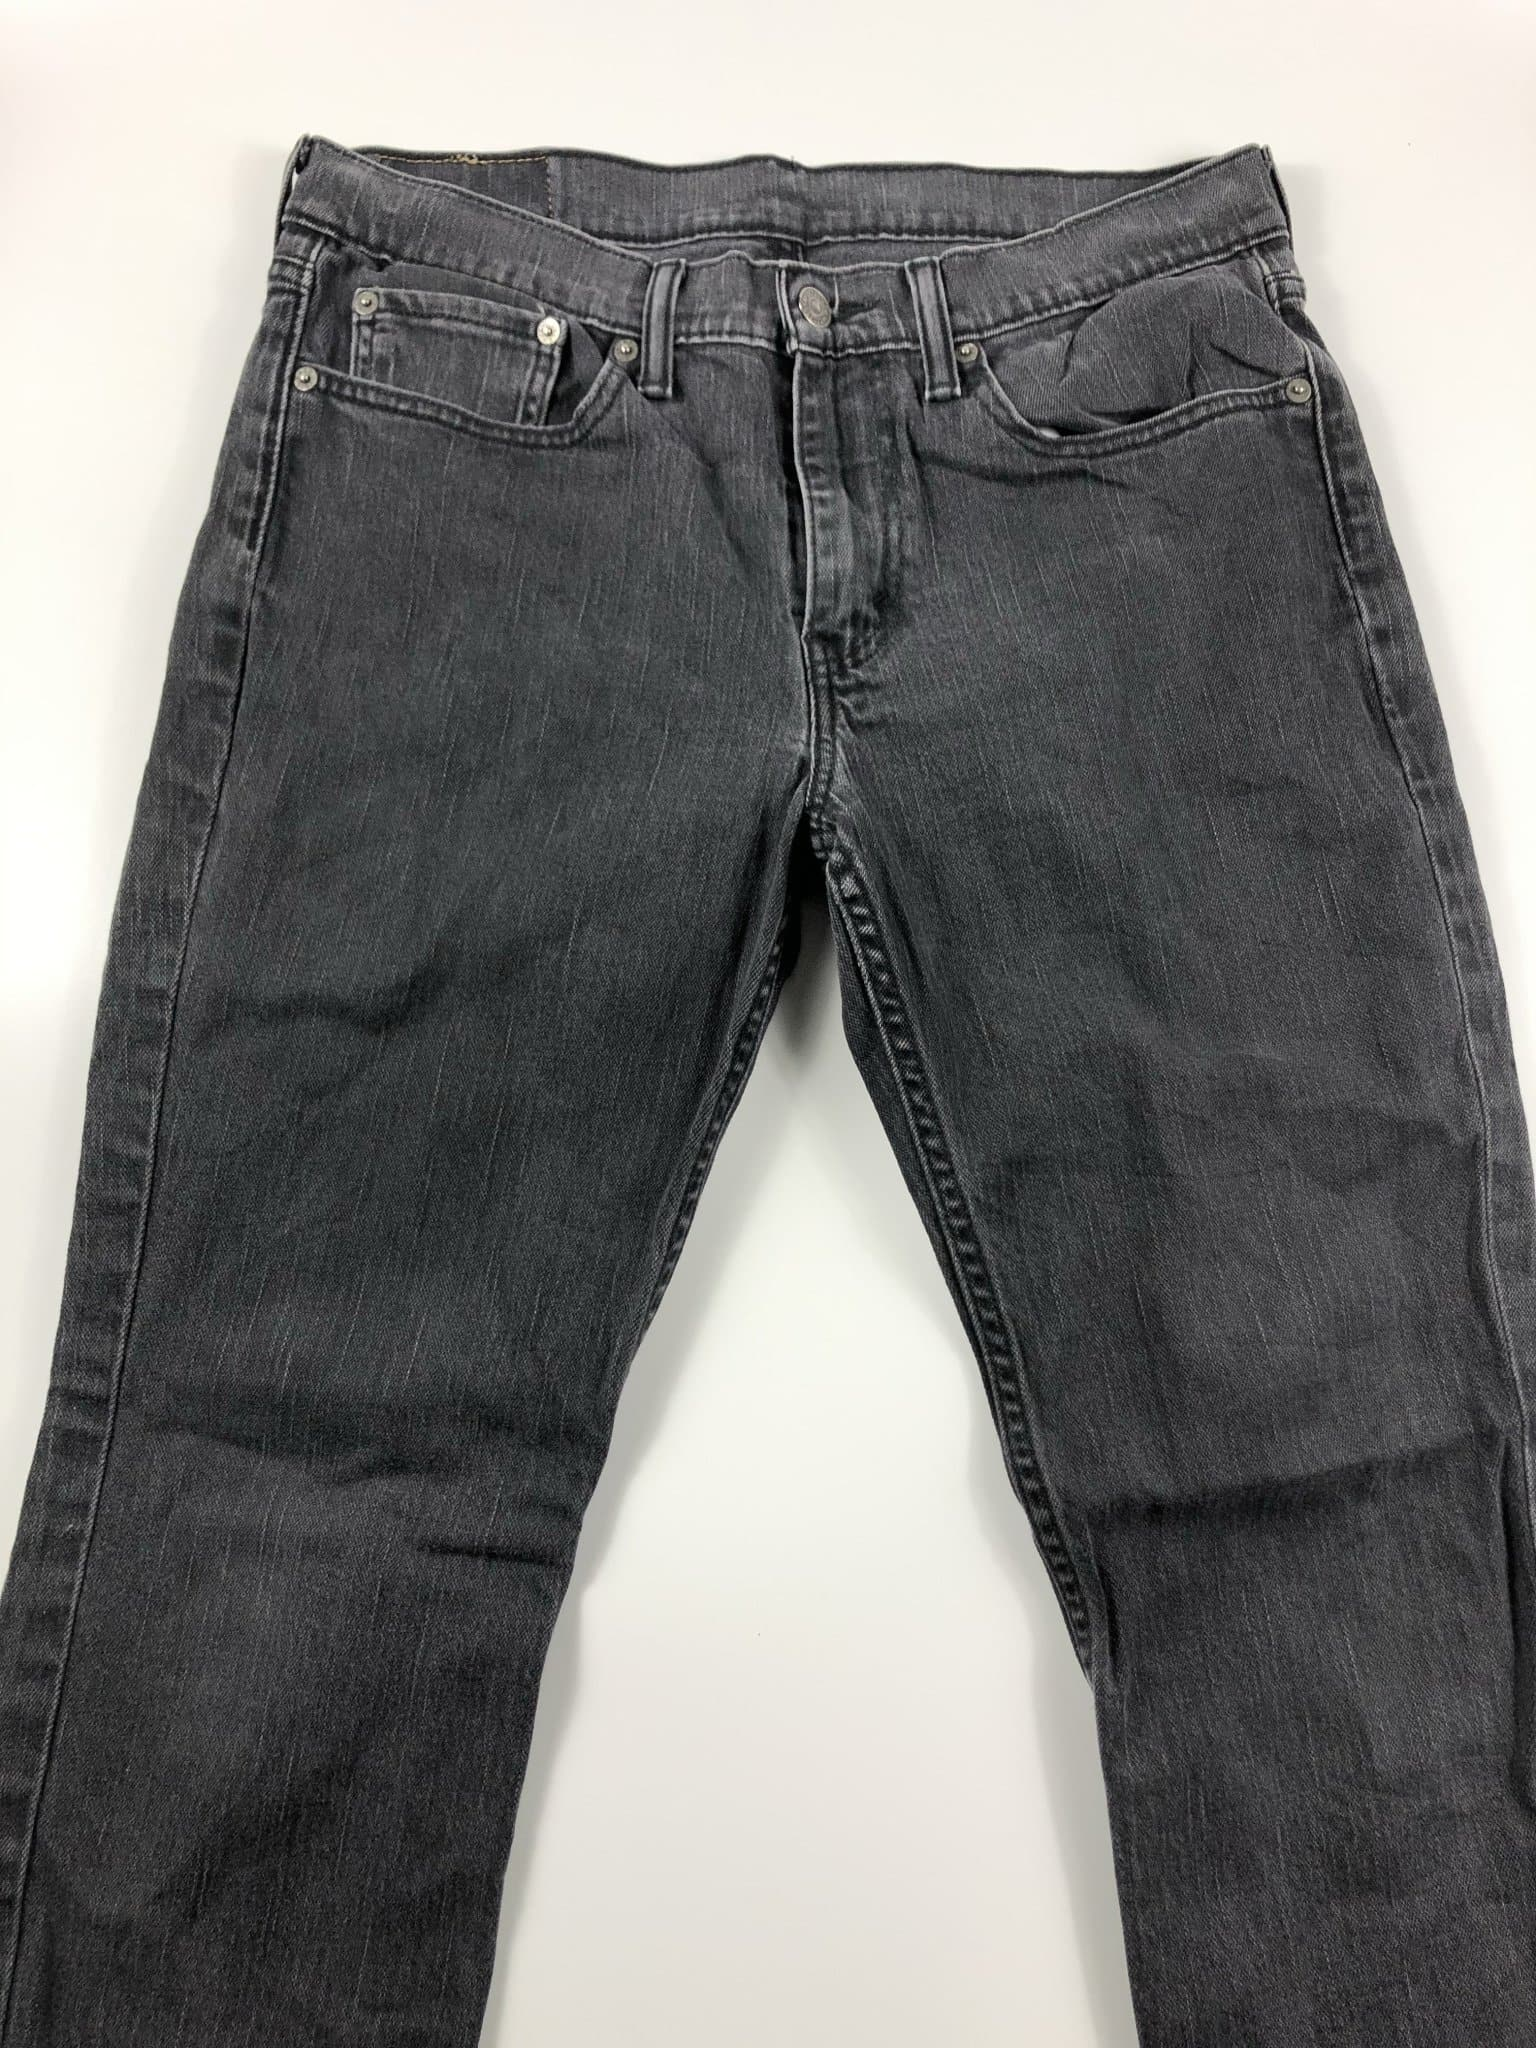 Vintage Levi's Classic 514 Jeans W32 L30 (P1) - Discounted Deals UK